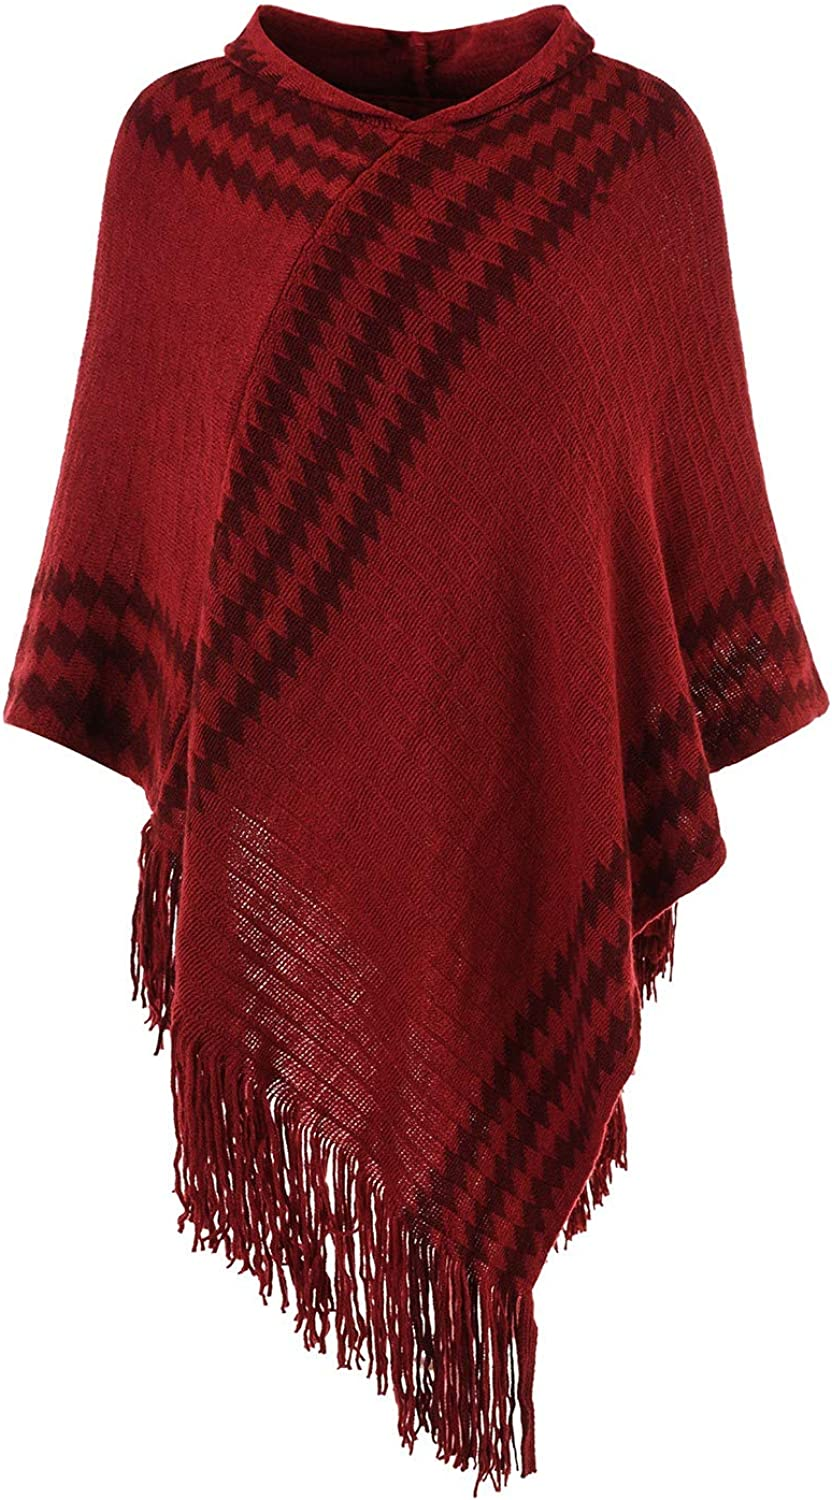 Ferand Women's Hooded Zigzag Striped Knit Cape Poncho Sweater with Fringes